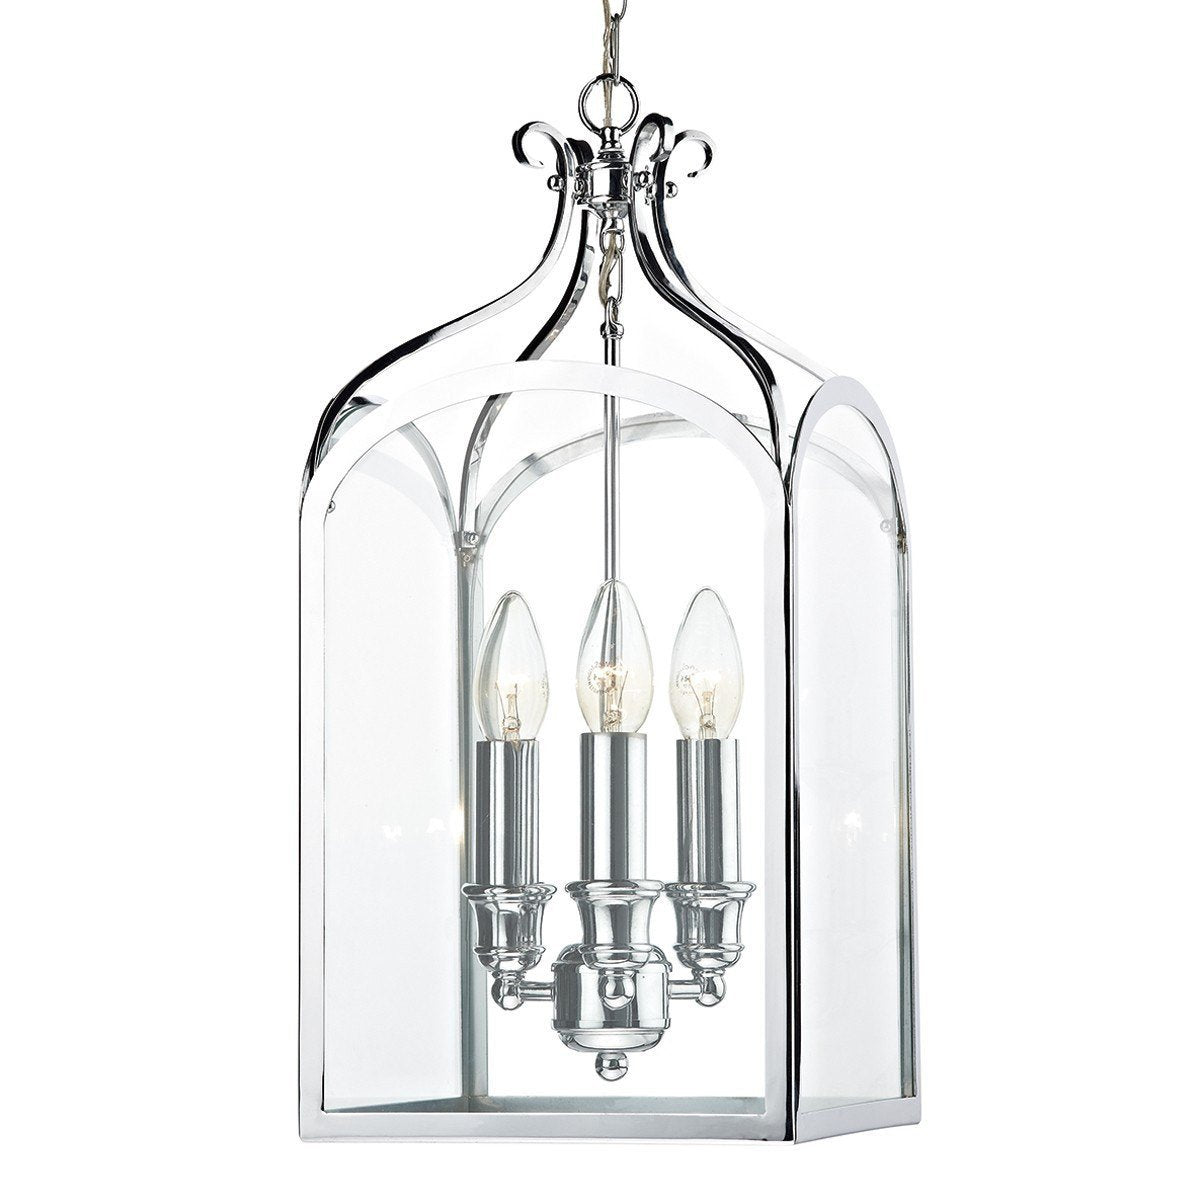 Senator Polished Chrome 3 Lights Pendant Light - London Lighting - 1